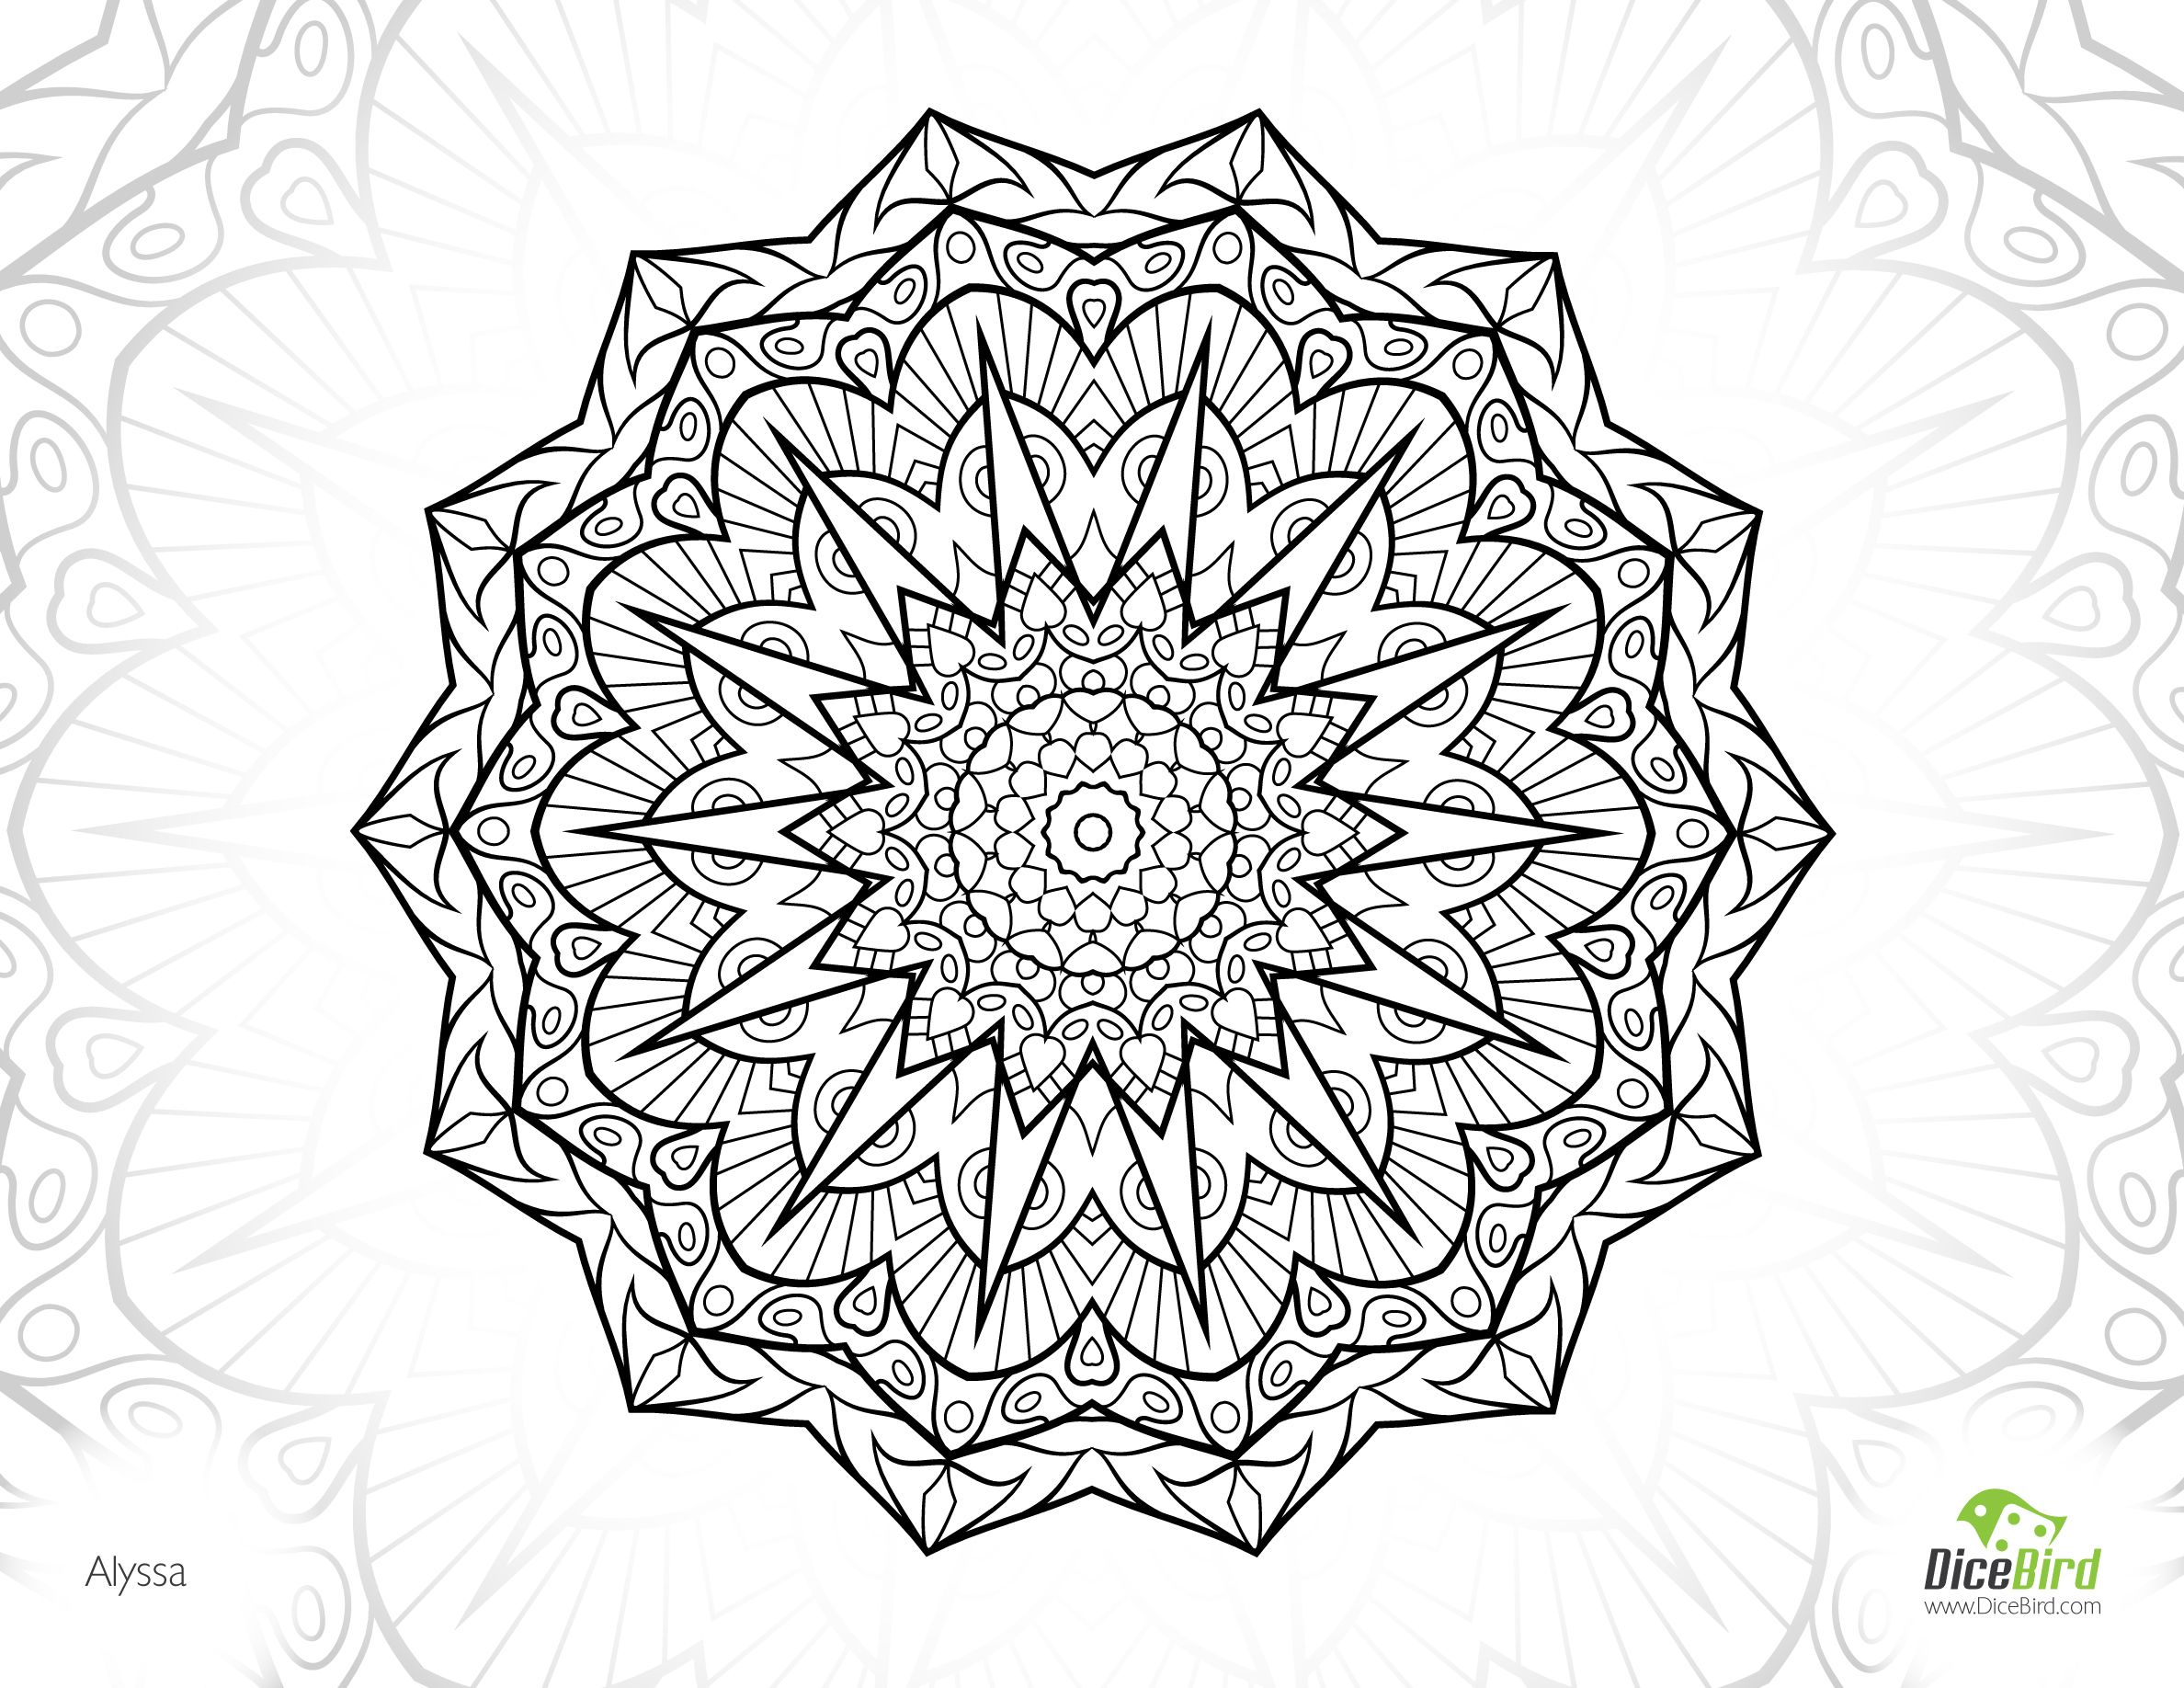 alyssa mandala free colouring pages for adults coloring